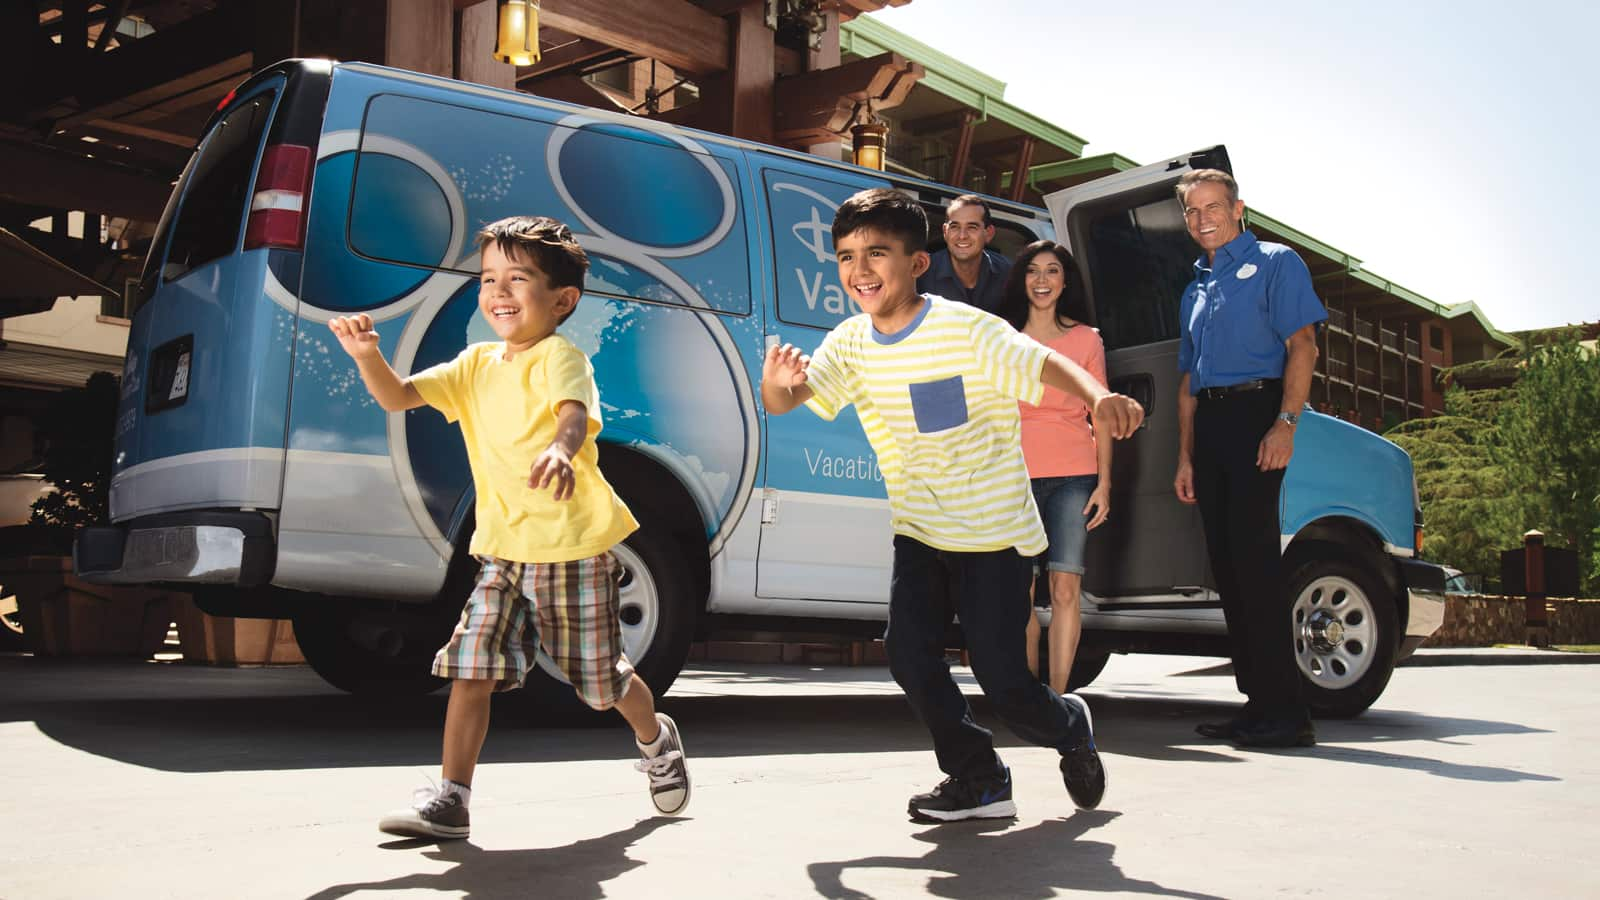 2 boys, a man and woman exit from a Disney Vacation Club van in front of a hotel